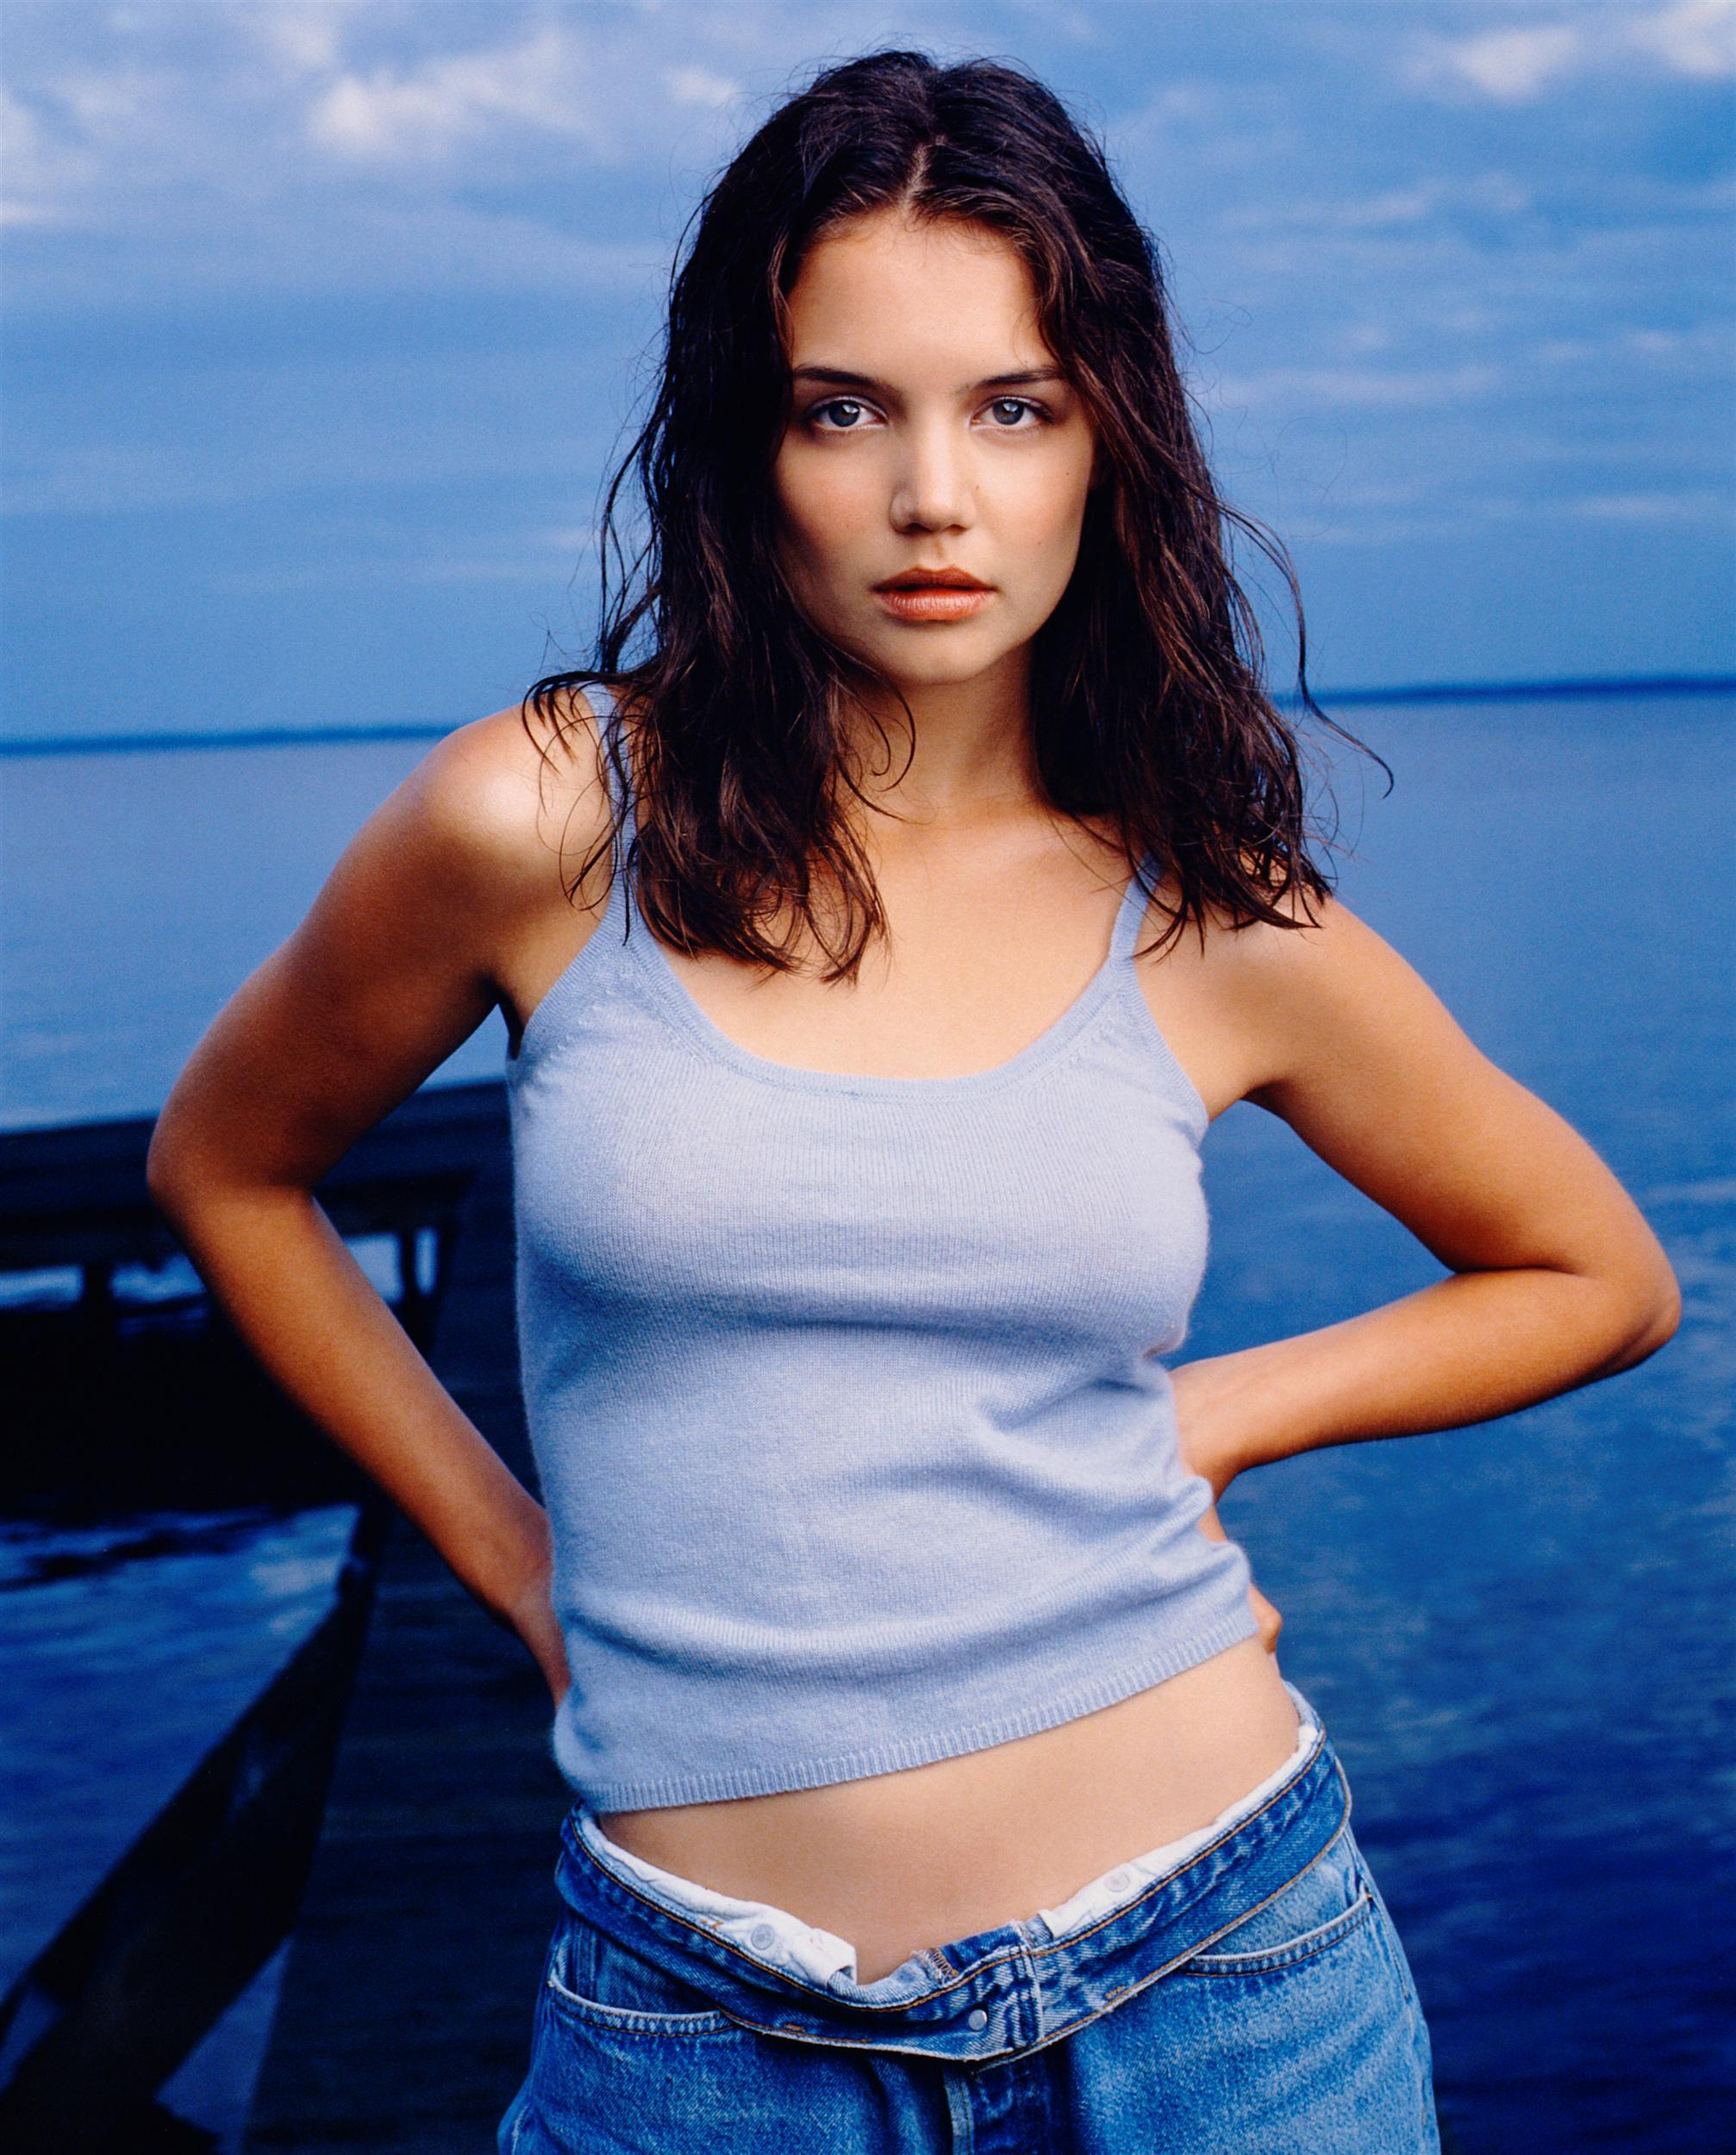 49 Hottest Katie Holmes Bikini Pictures Reveal Insanely ...